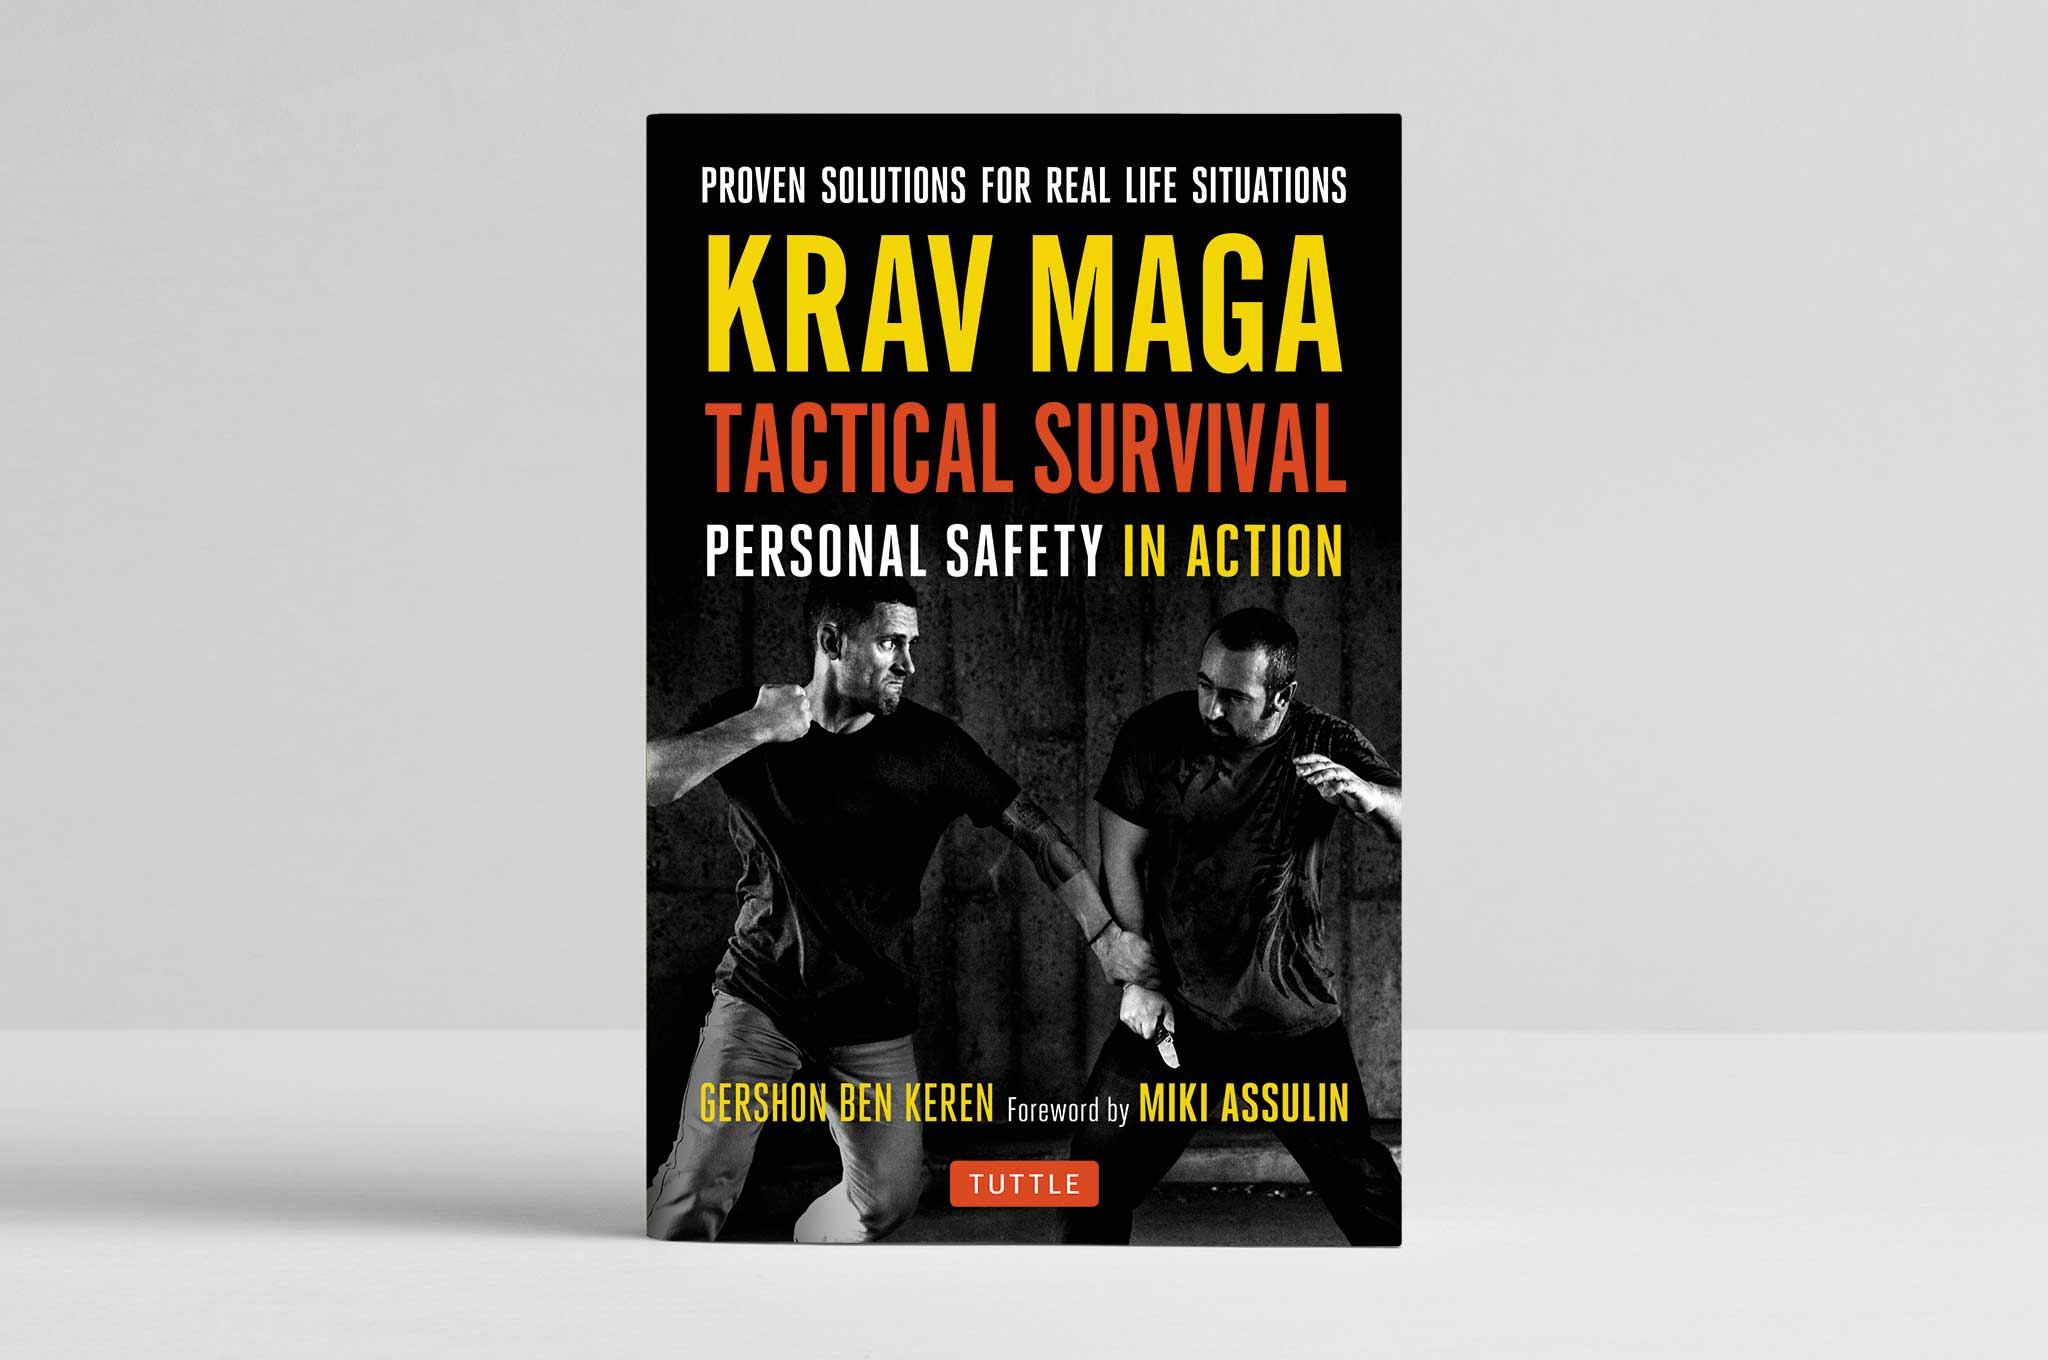 krav-maga-tactical-survival-personal-safety-in-action